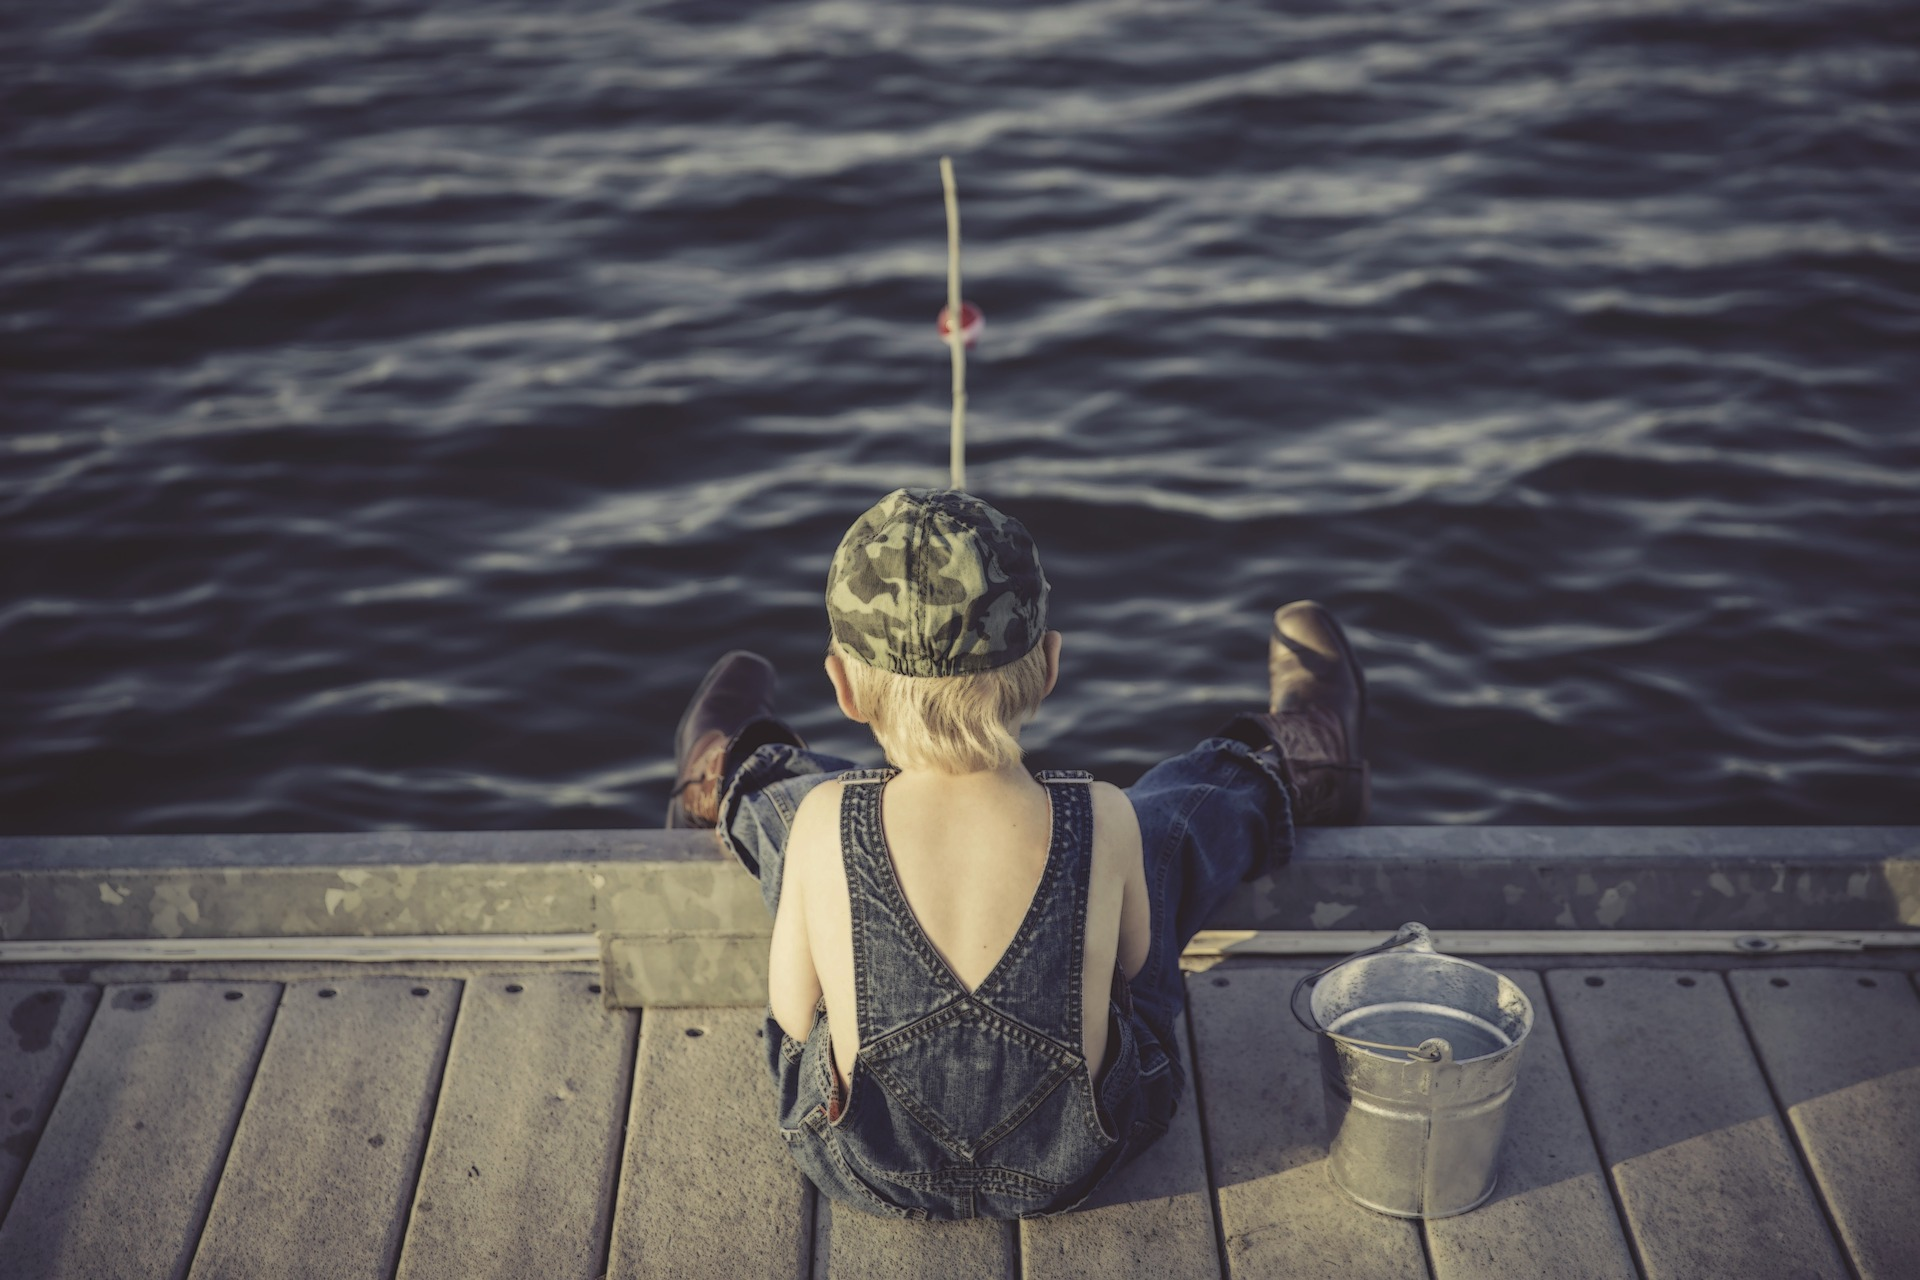 Image of a young boy fishing off a dock.